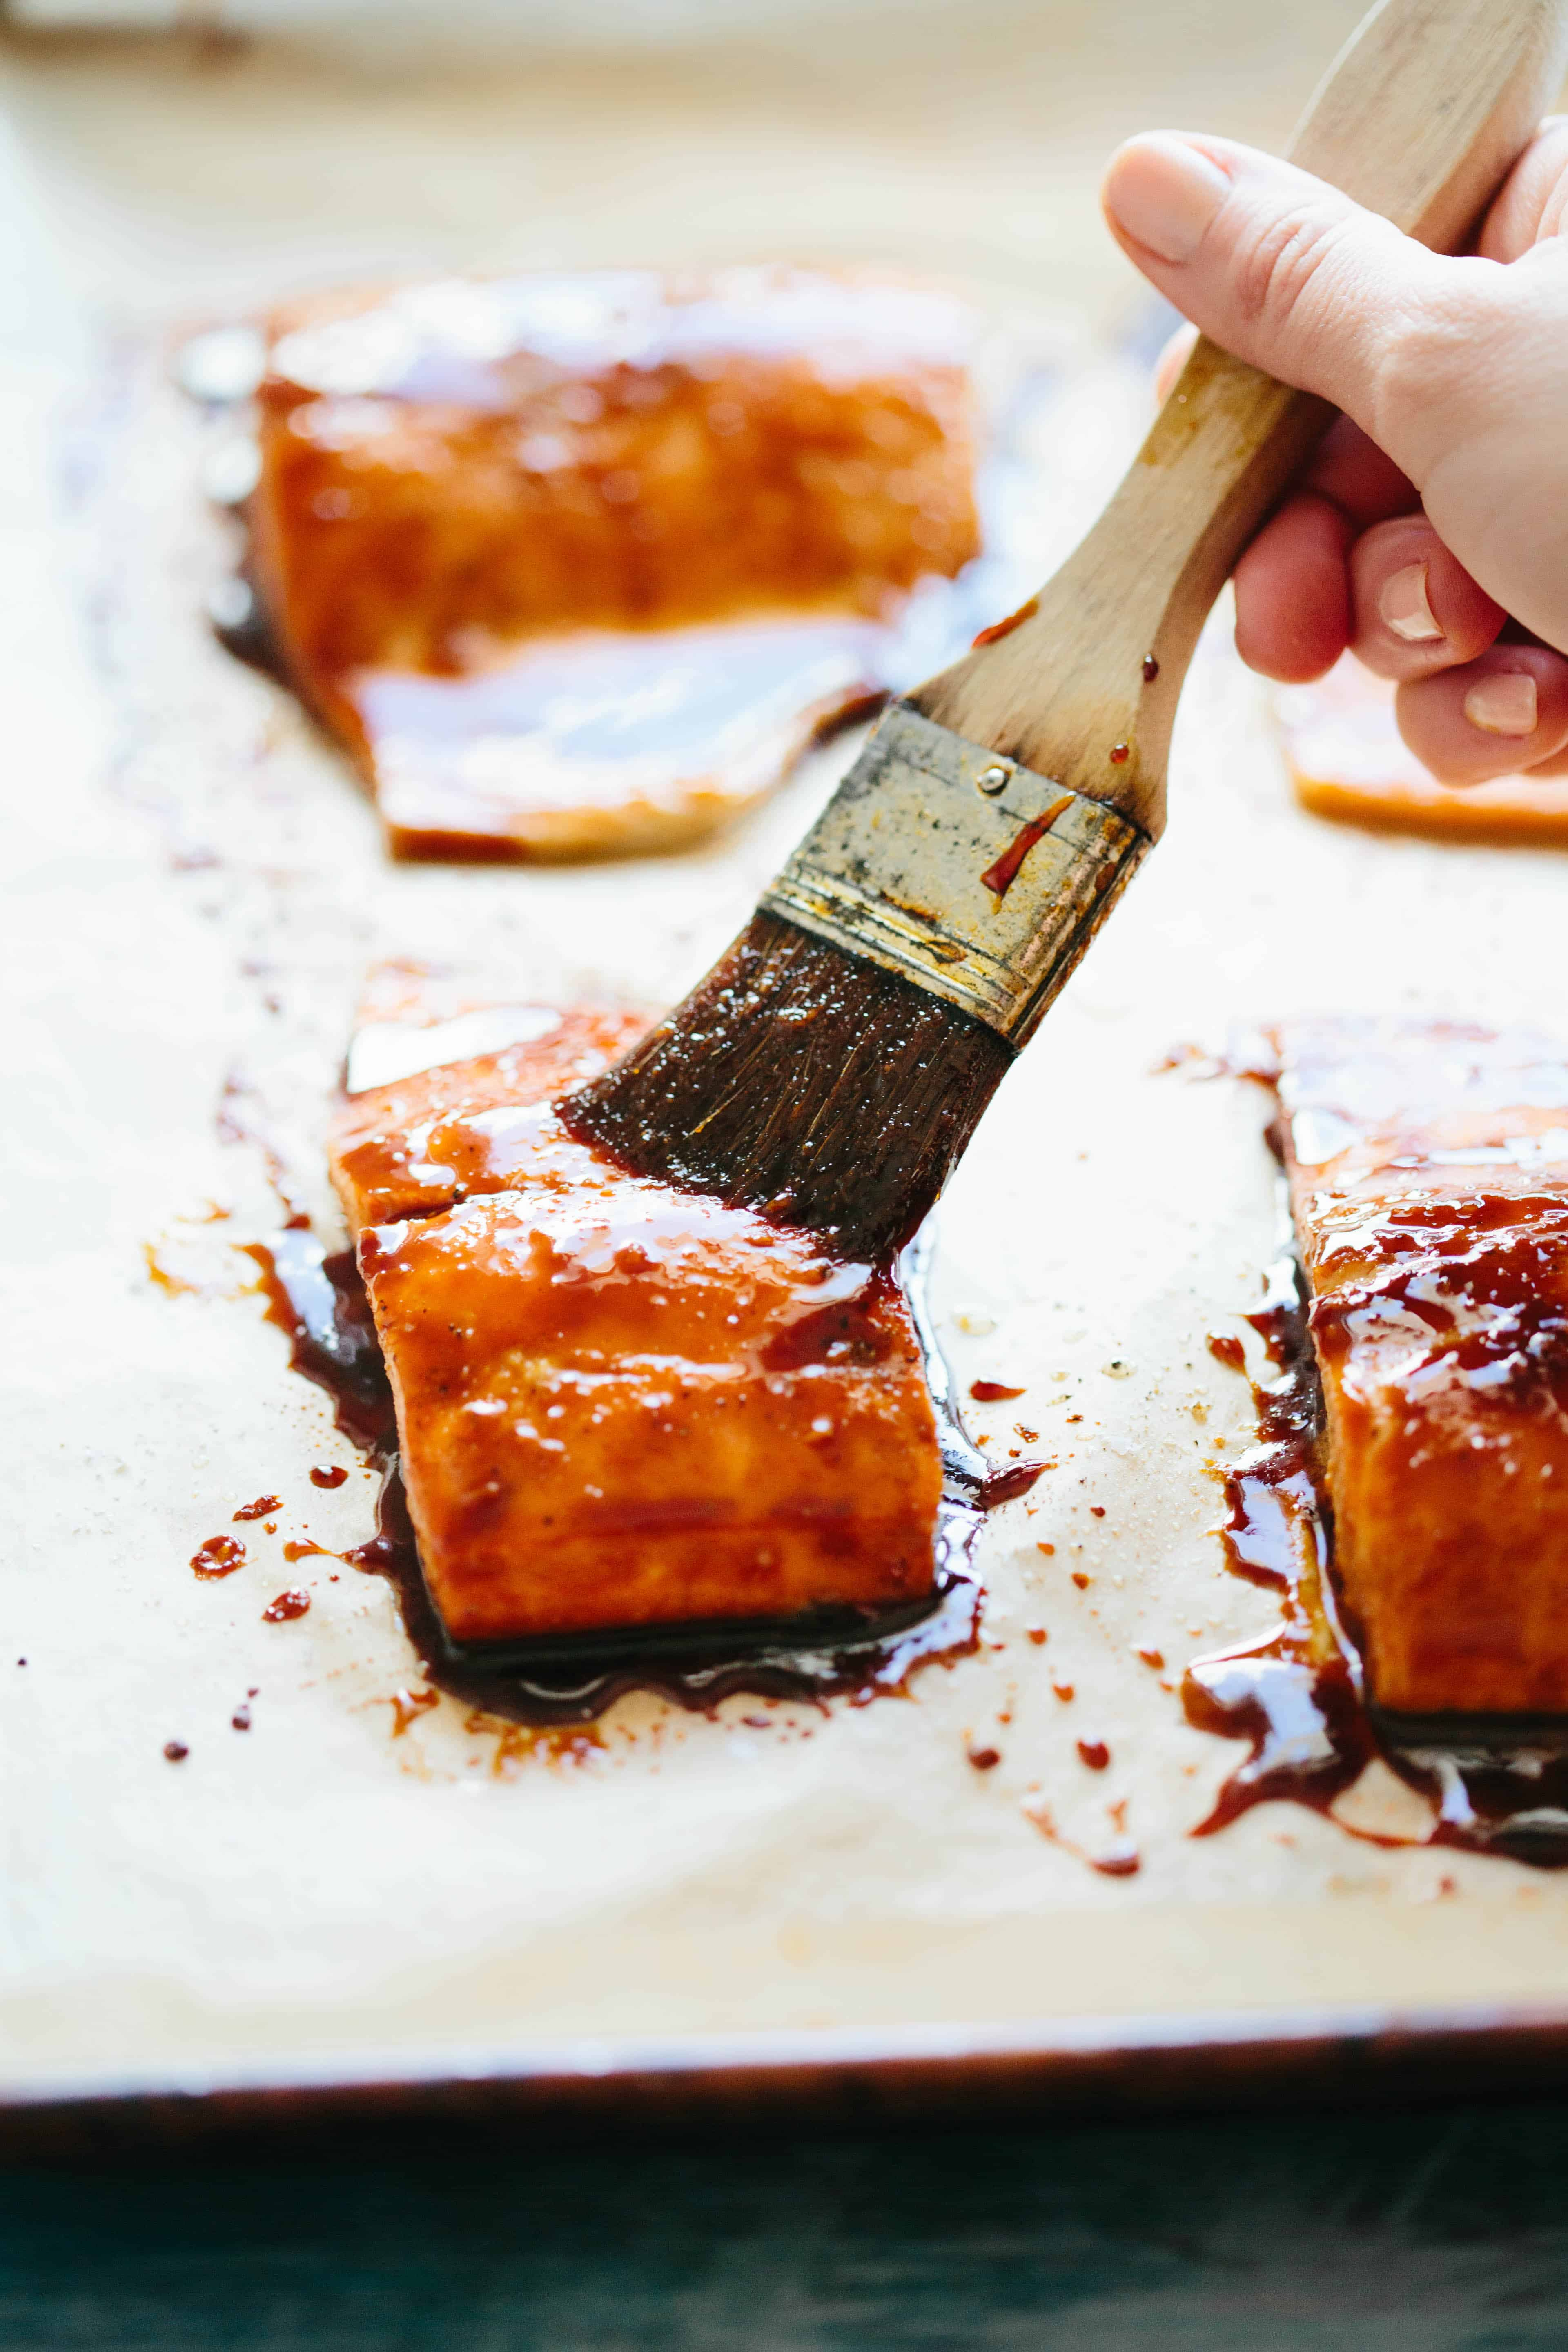 Using a pastry brush to add soy glaze to a salmon fillet.